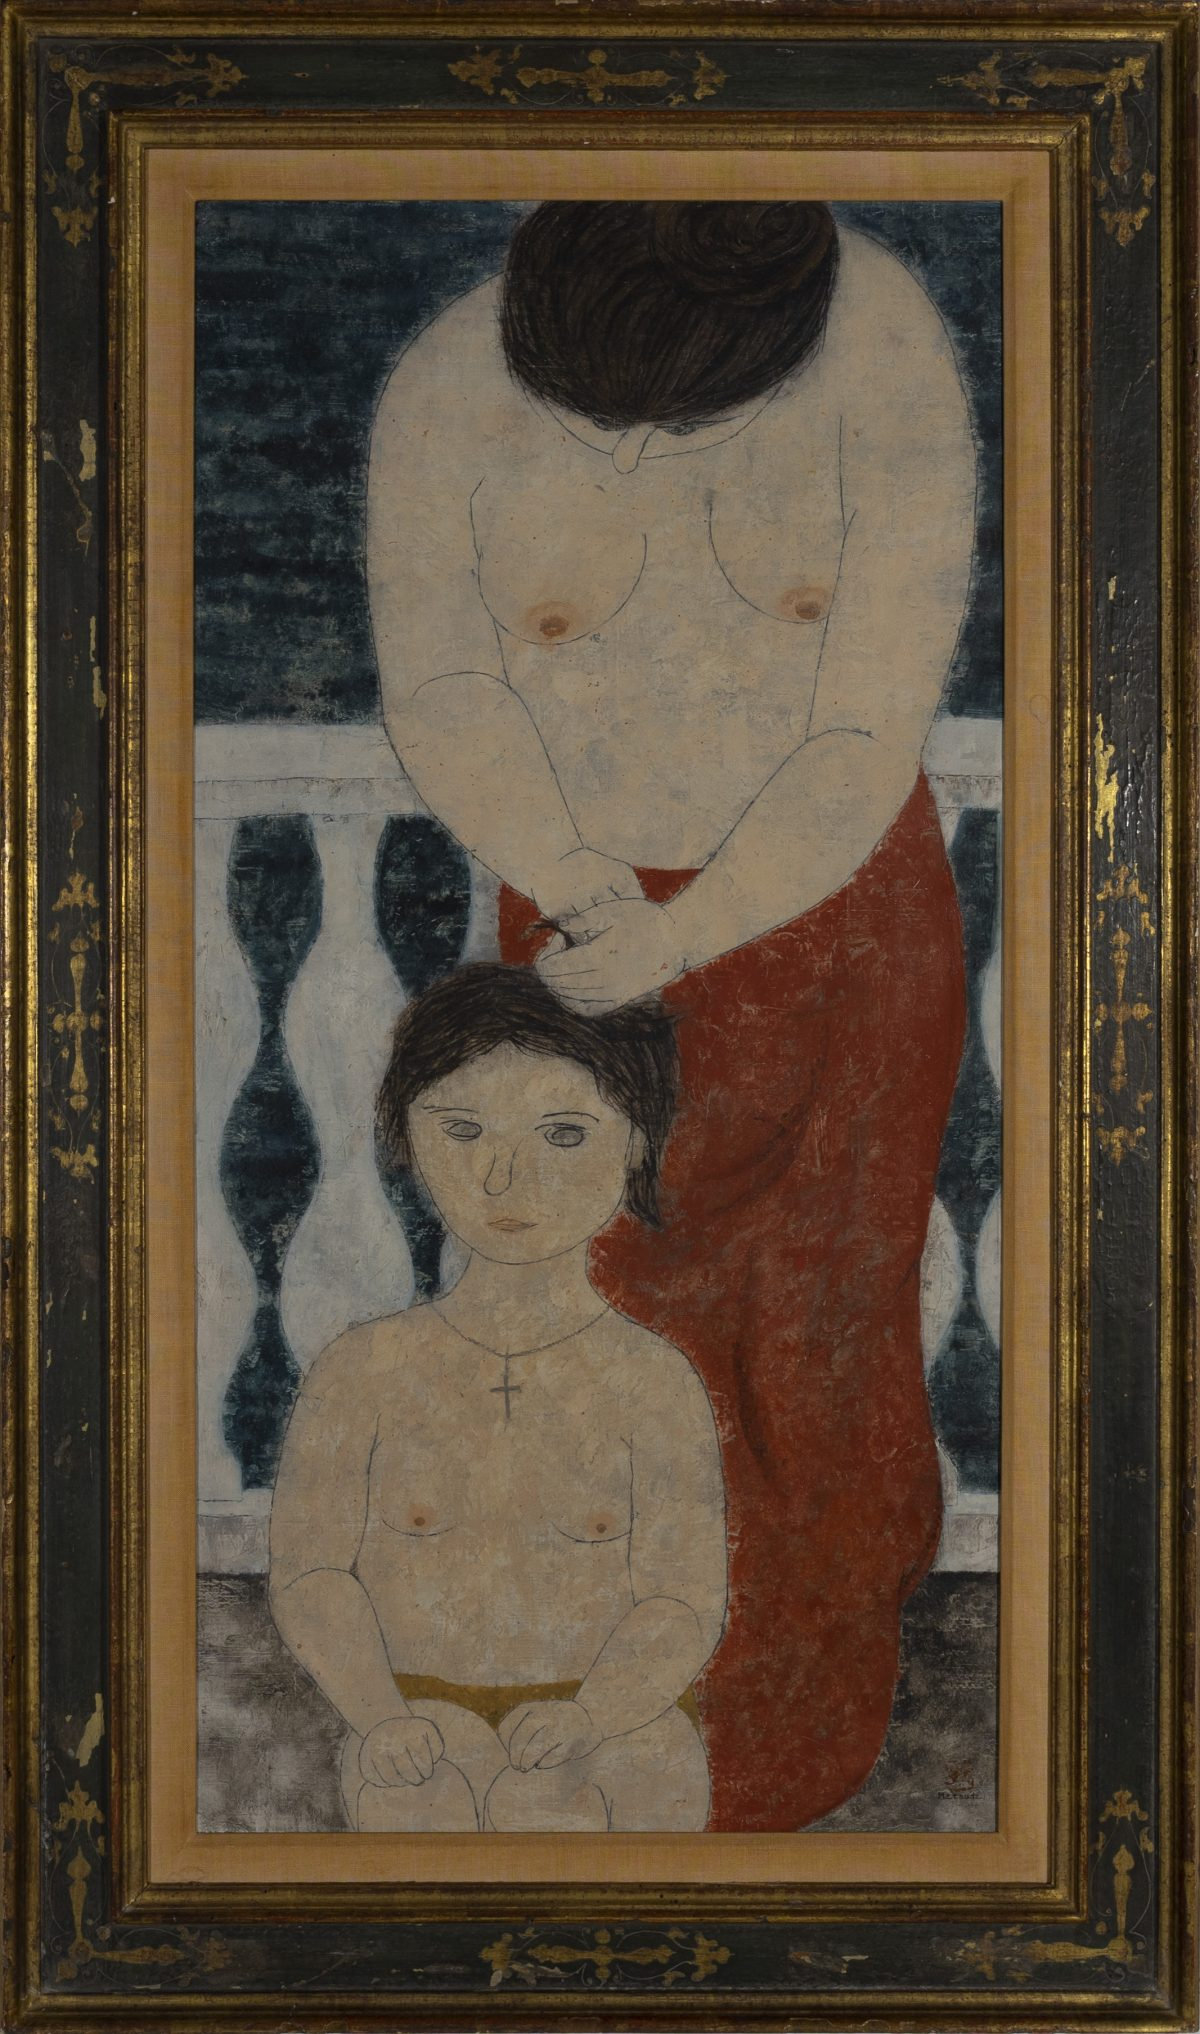 Fumiko Matsuda - Two Female figures, a young girl and an older woman,